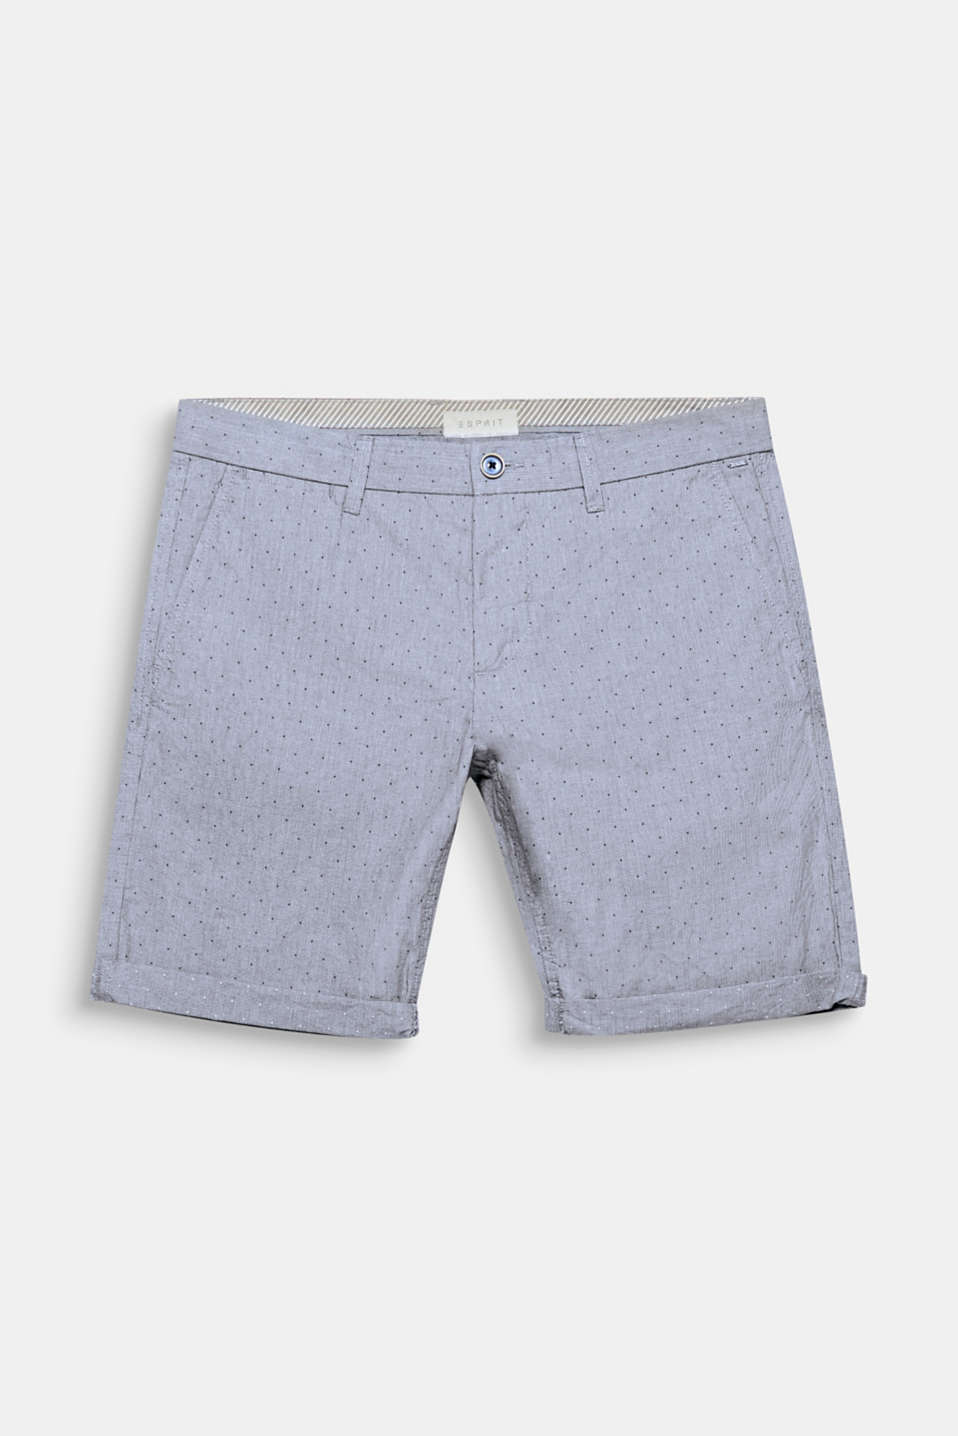 A fine houndstooth and dot pattern makes these shorts seriously smart.